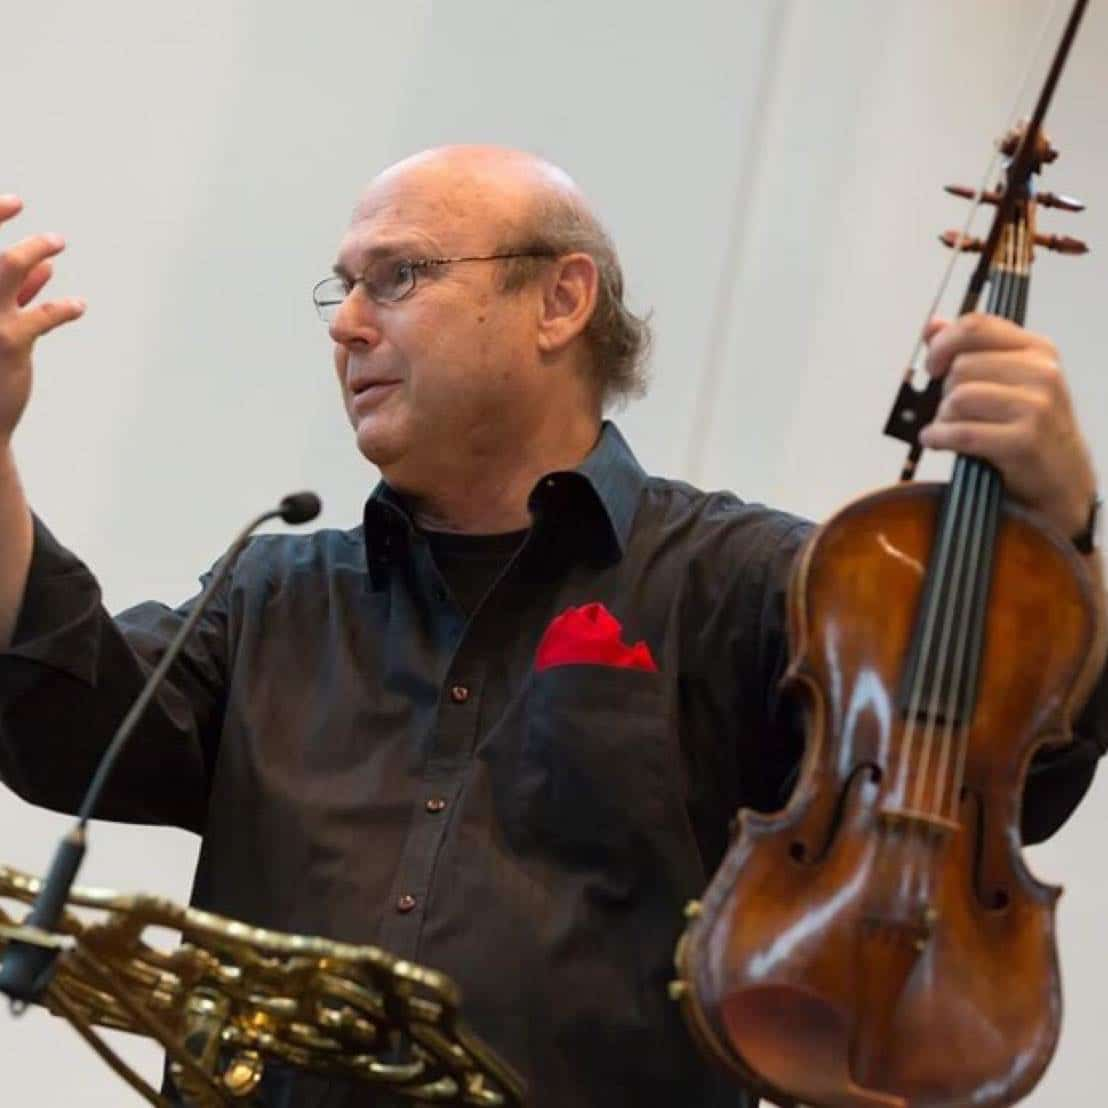 A conductor's human gift to a dying violist